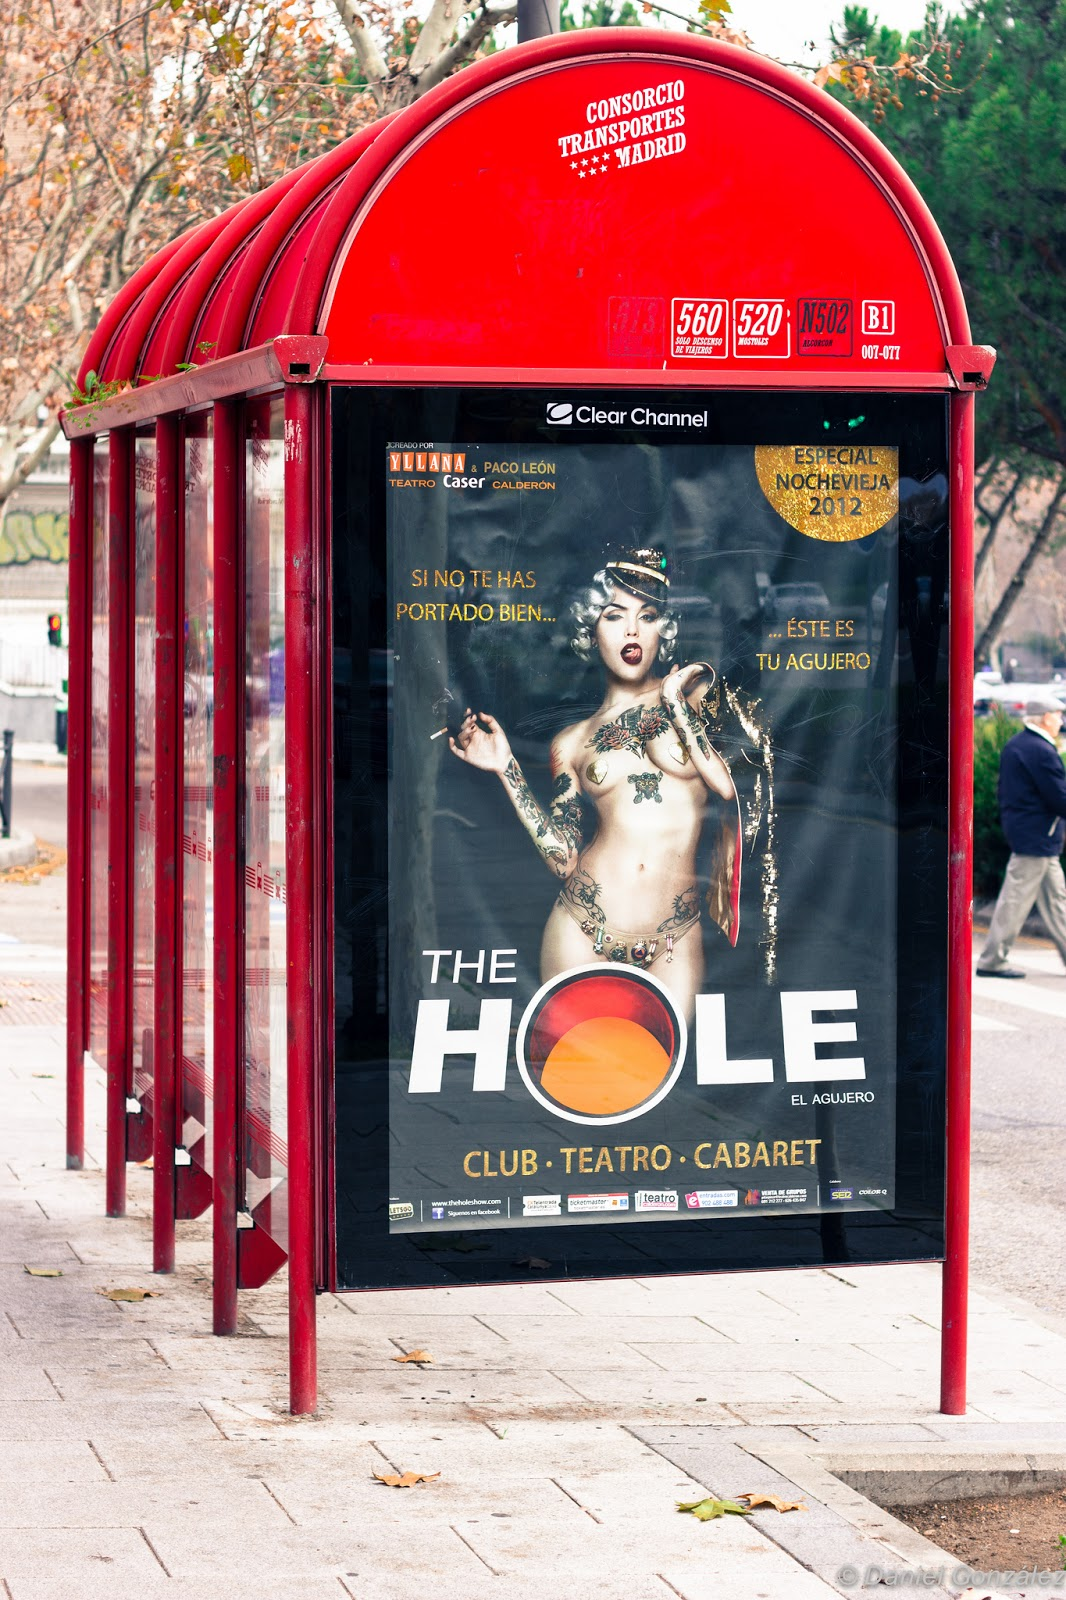 The Hole, Alcorcón 2012